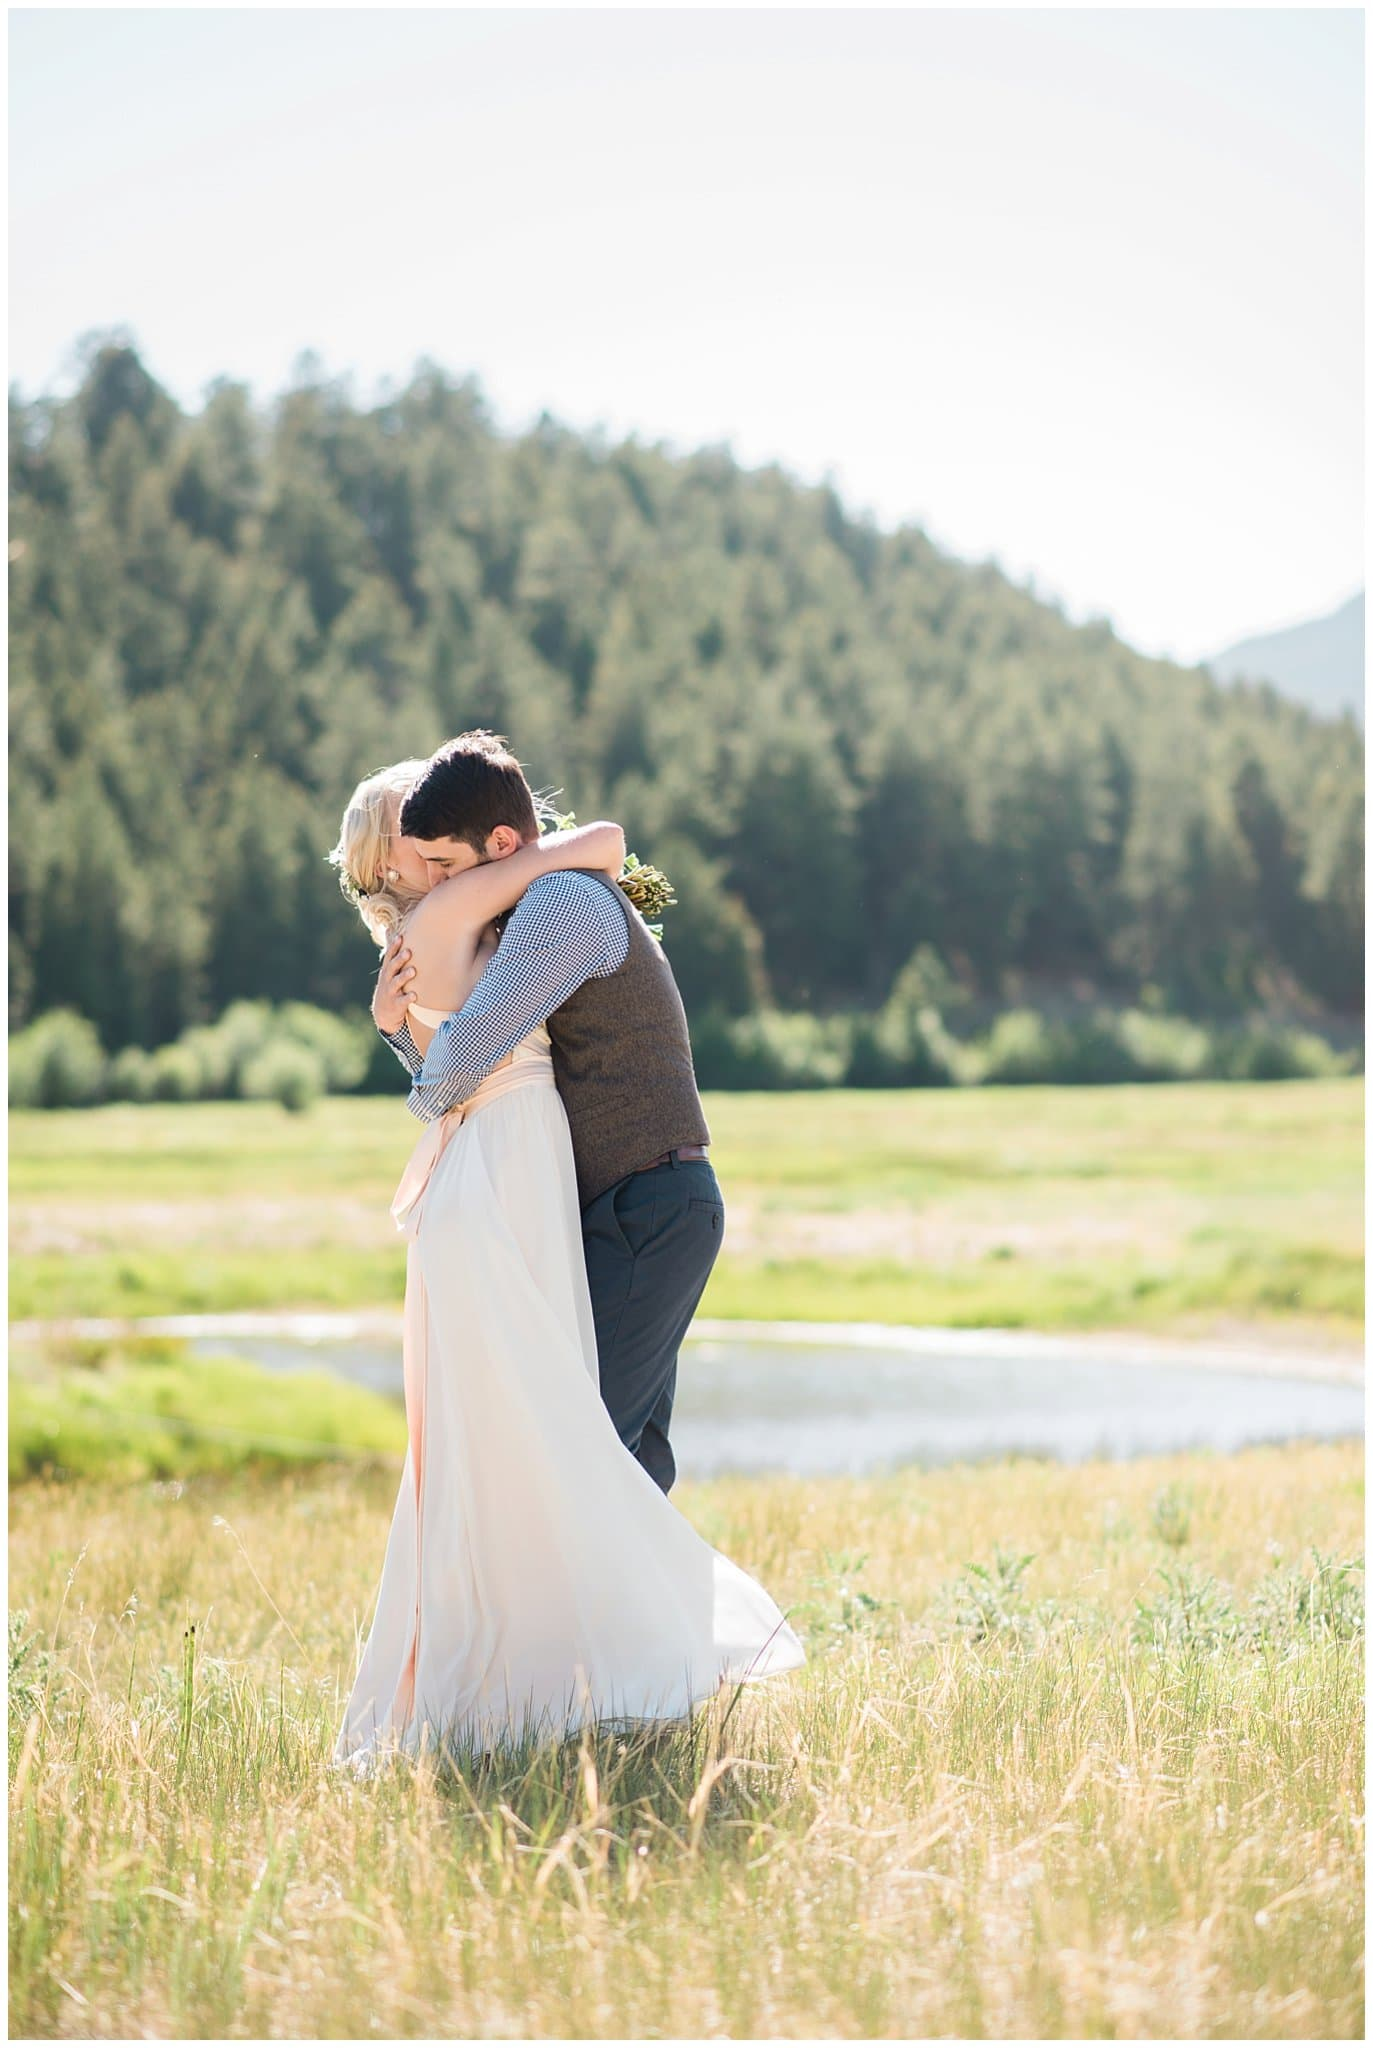 bride and groom in field after ceremony at Deer Creek Valley Ranch wedding by Conifer Wedding Photographer Jennie Crate Photographer